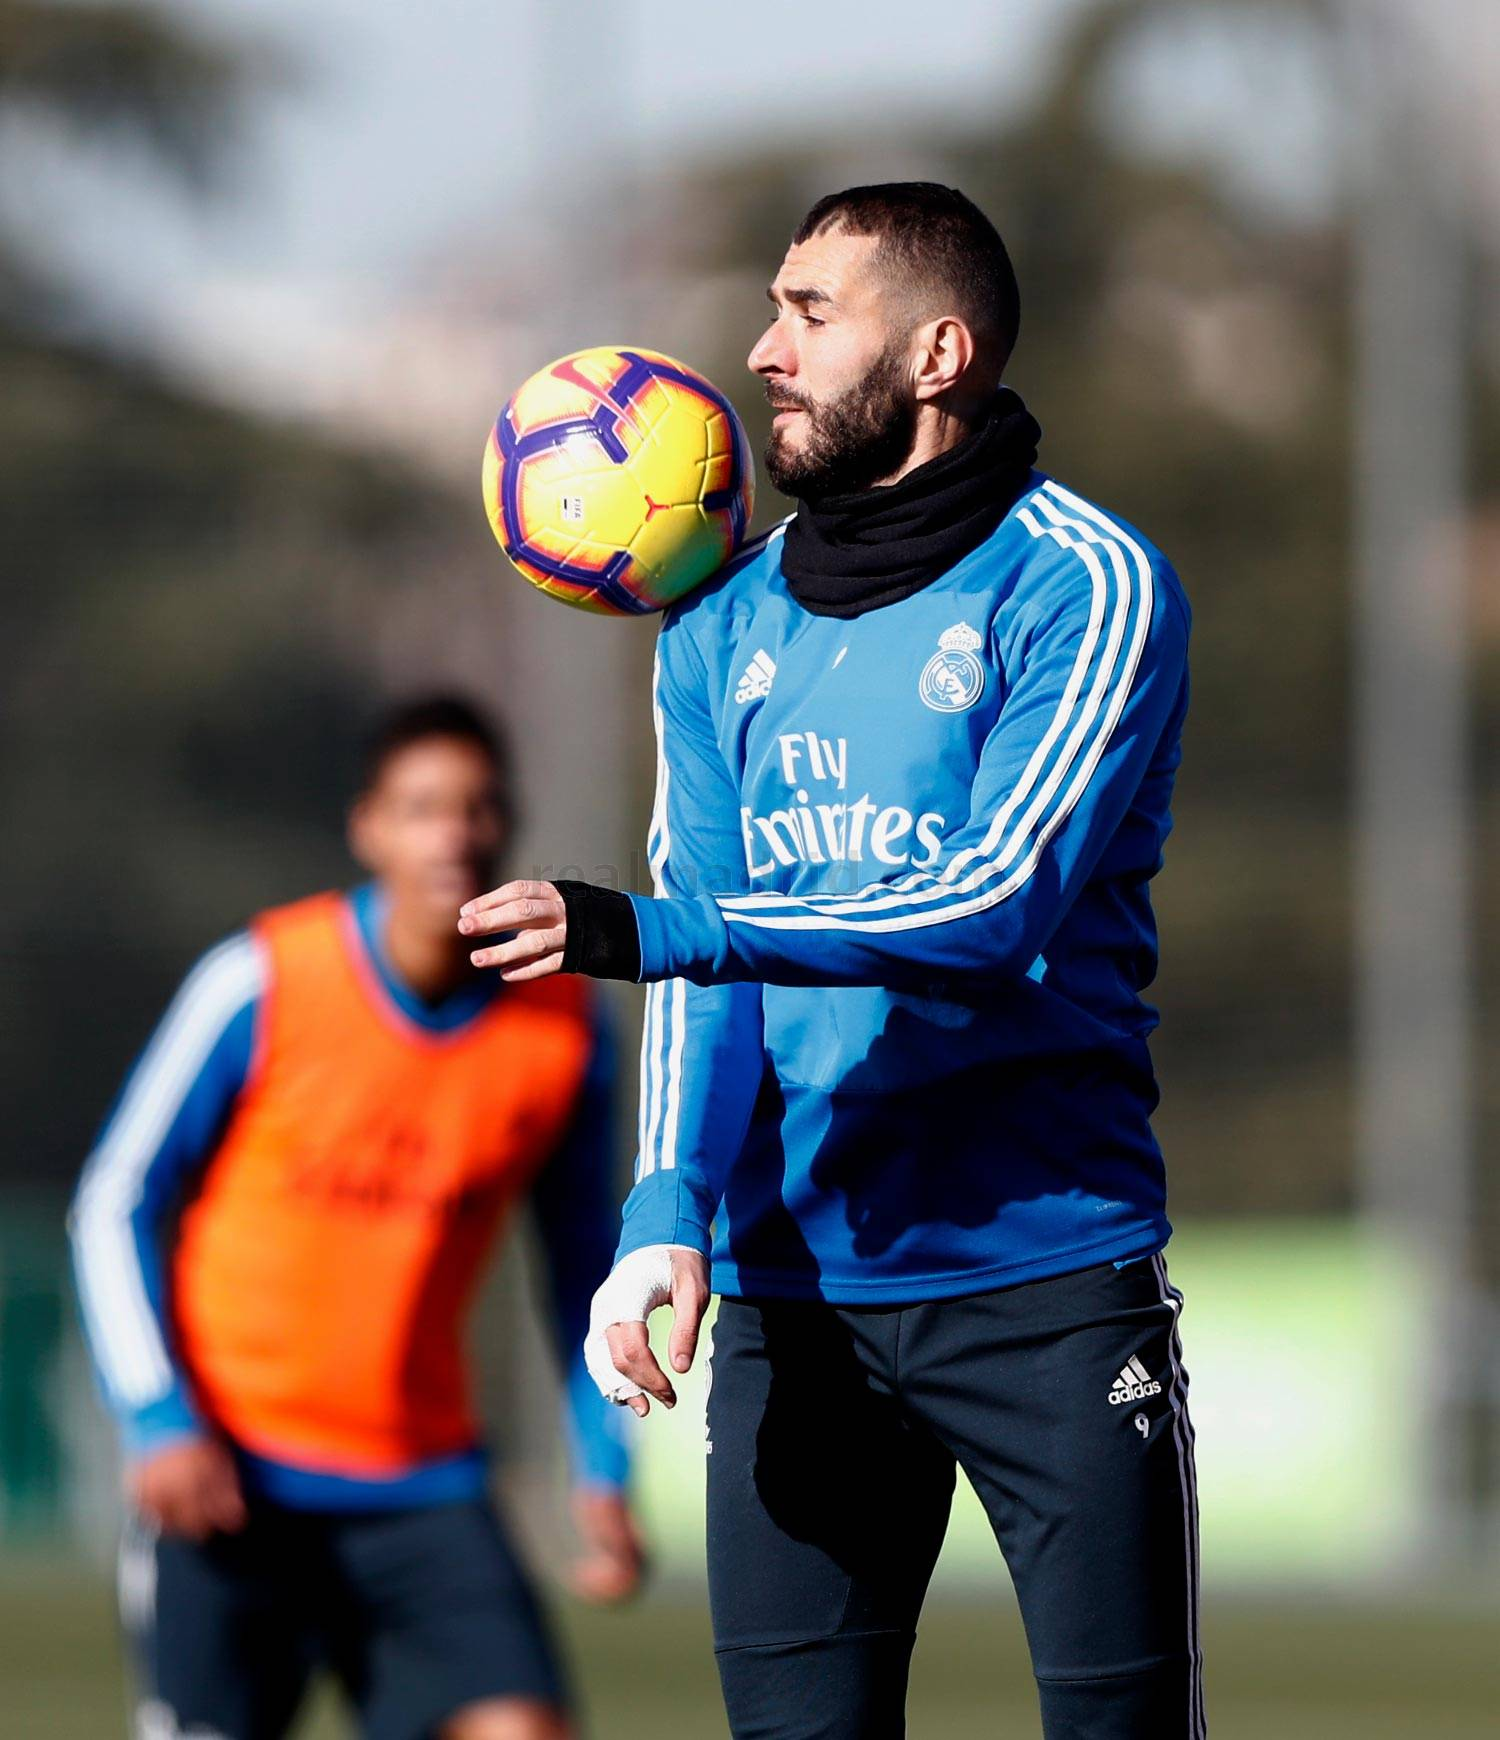 Real Madrid - Entrenamiento del Real Madrid - 26-01-2019